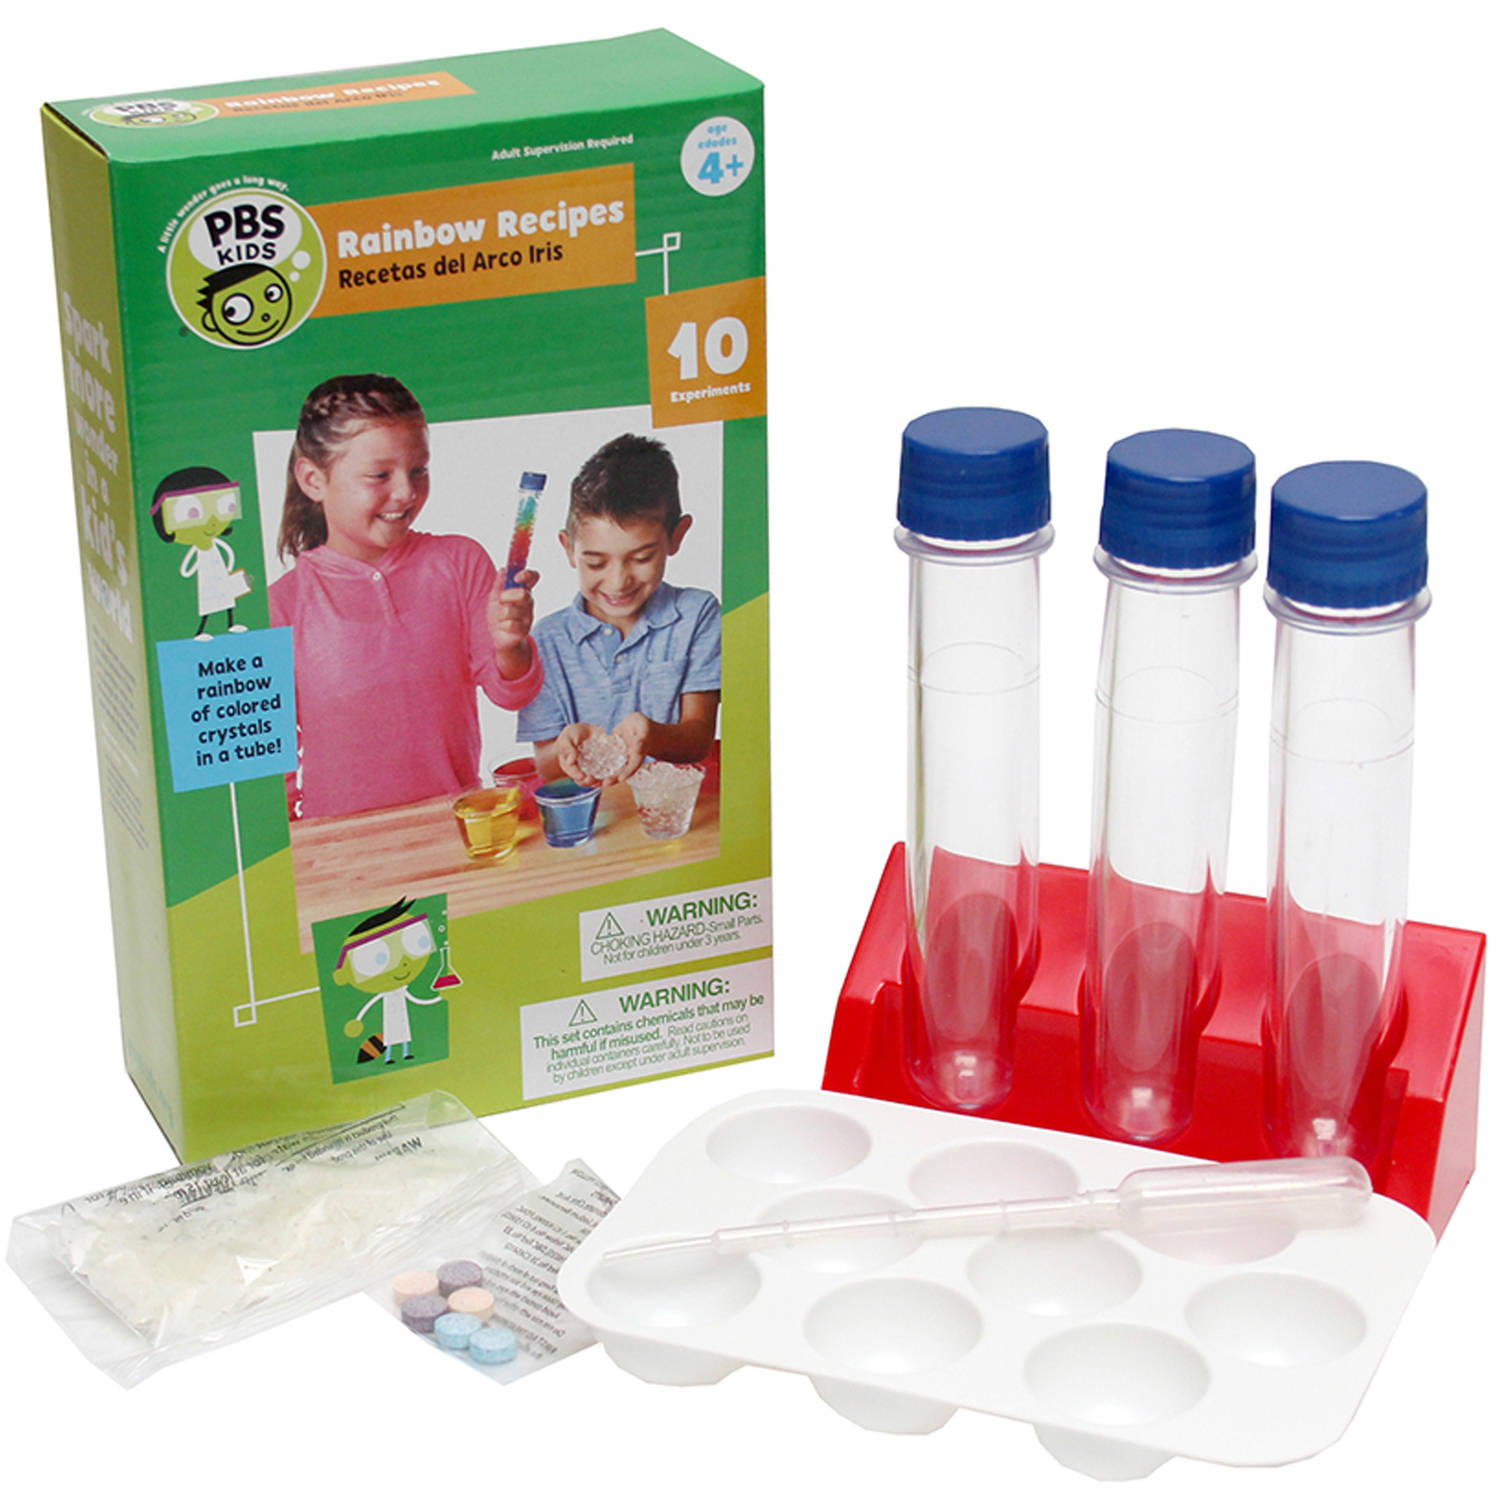 PBS Kids Rainbow Recipes Science Kit